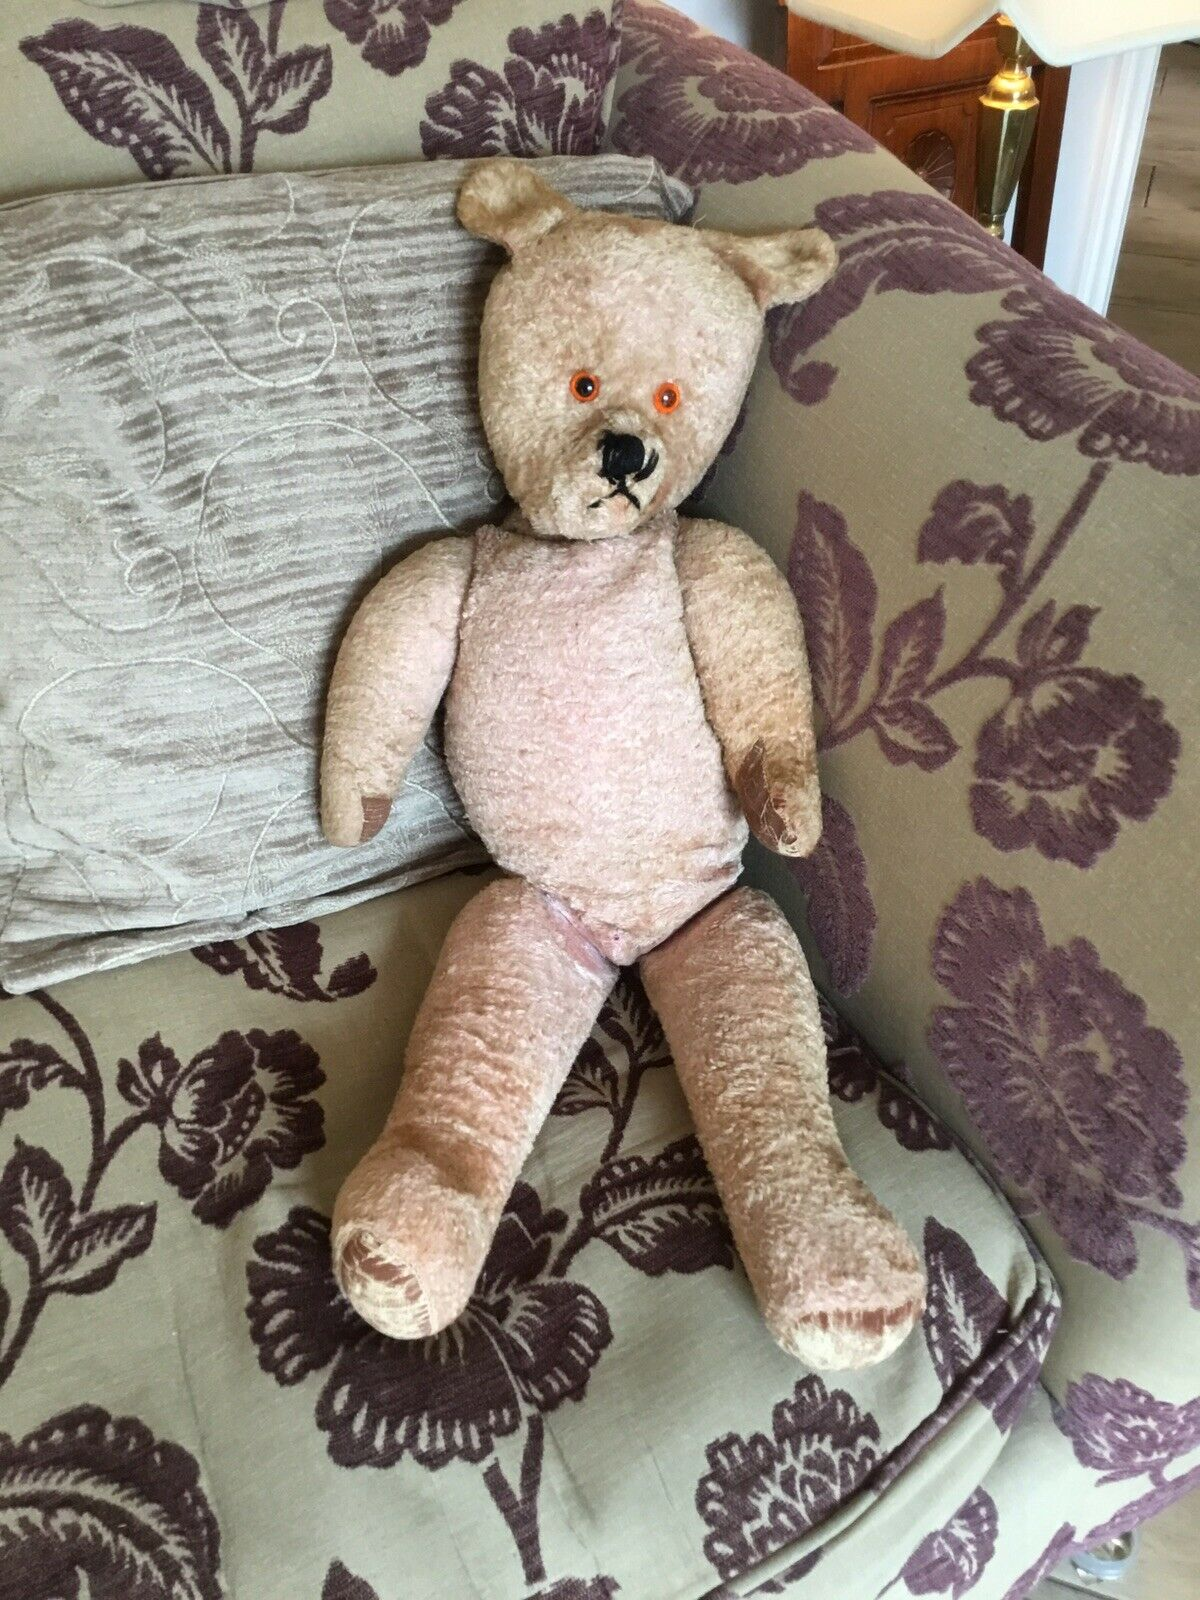 Growler 1940's/50's Large Plush Teddy Bear. 72 Cm Long. Looking for a New Home.